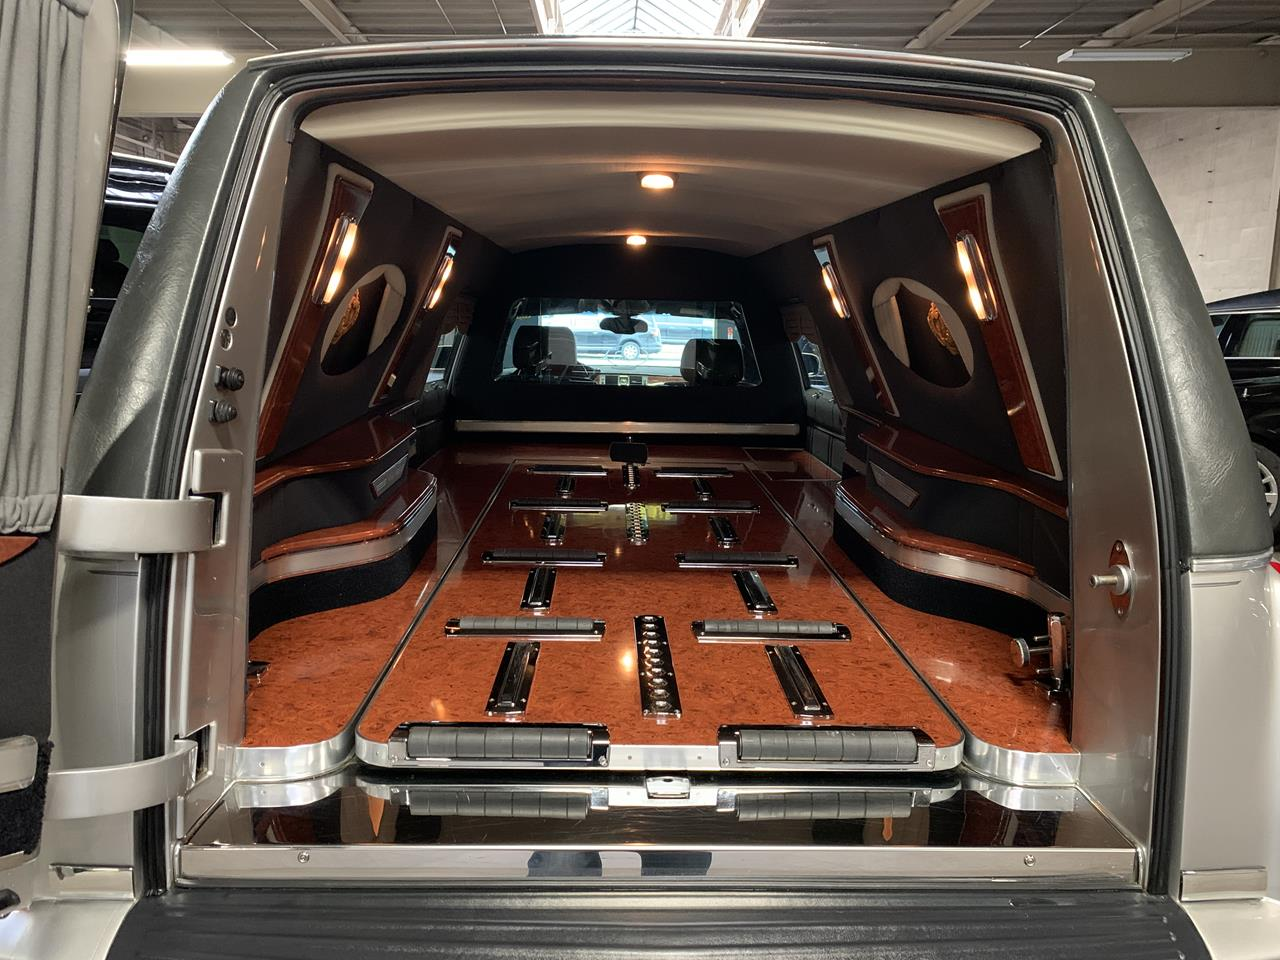 2006 Cadillac Eagle Kingsley Hearse 900 7